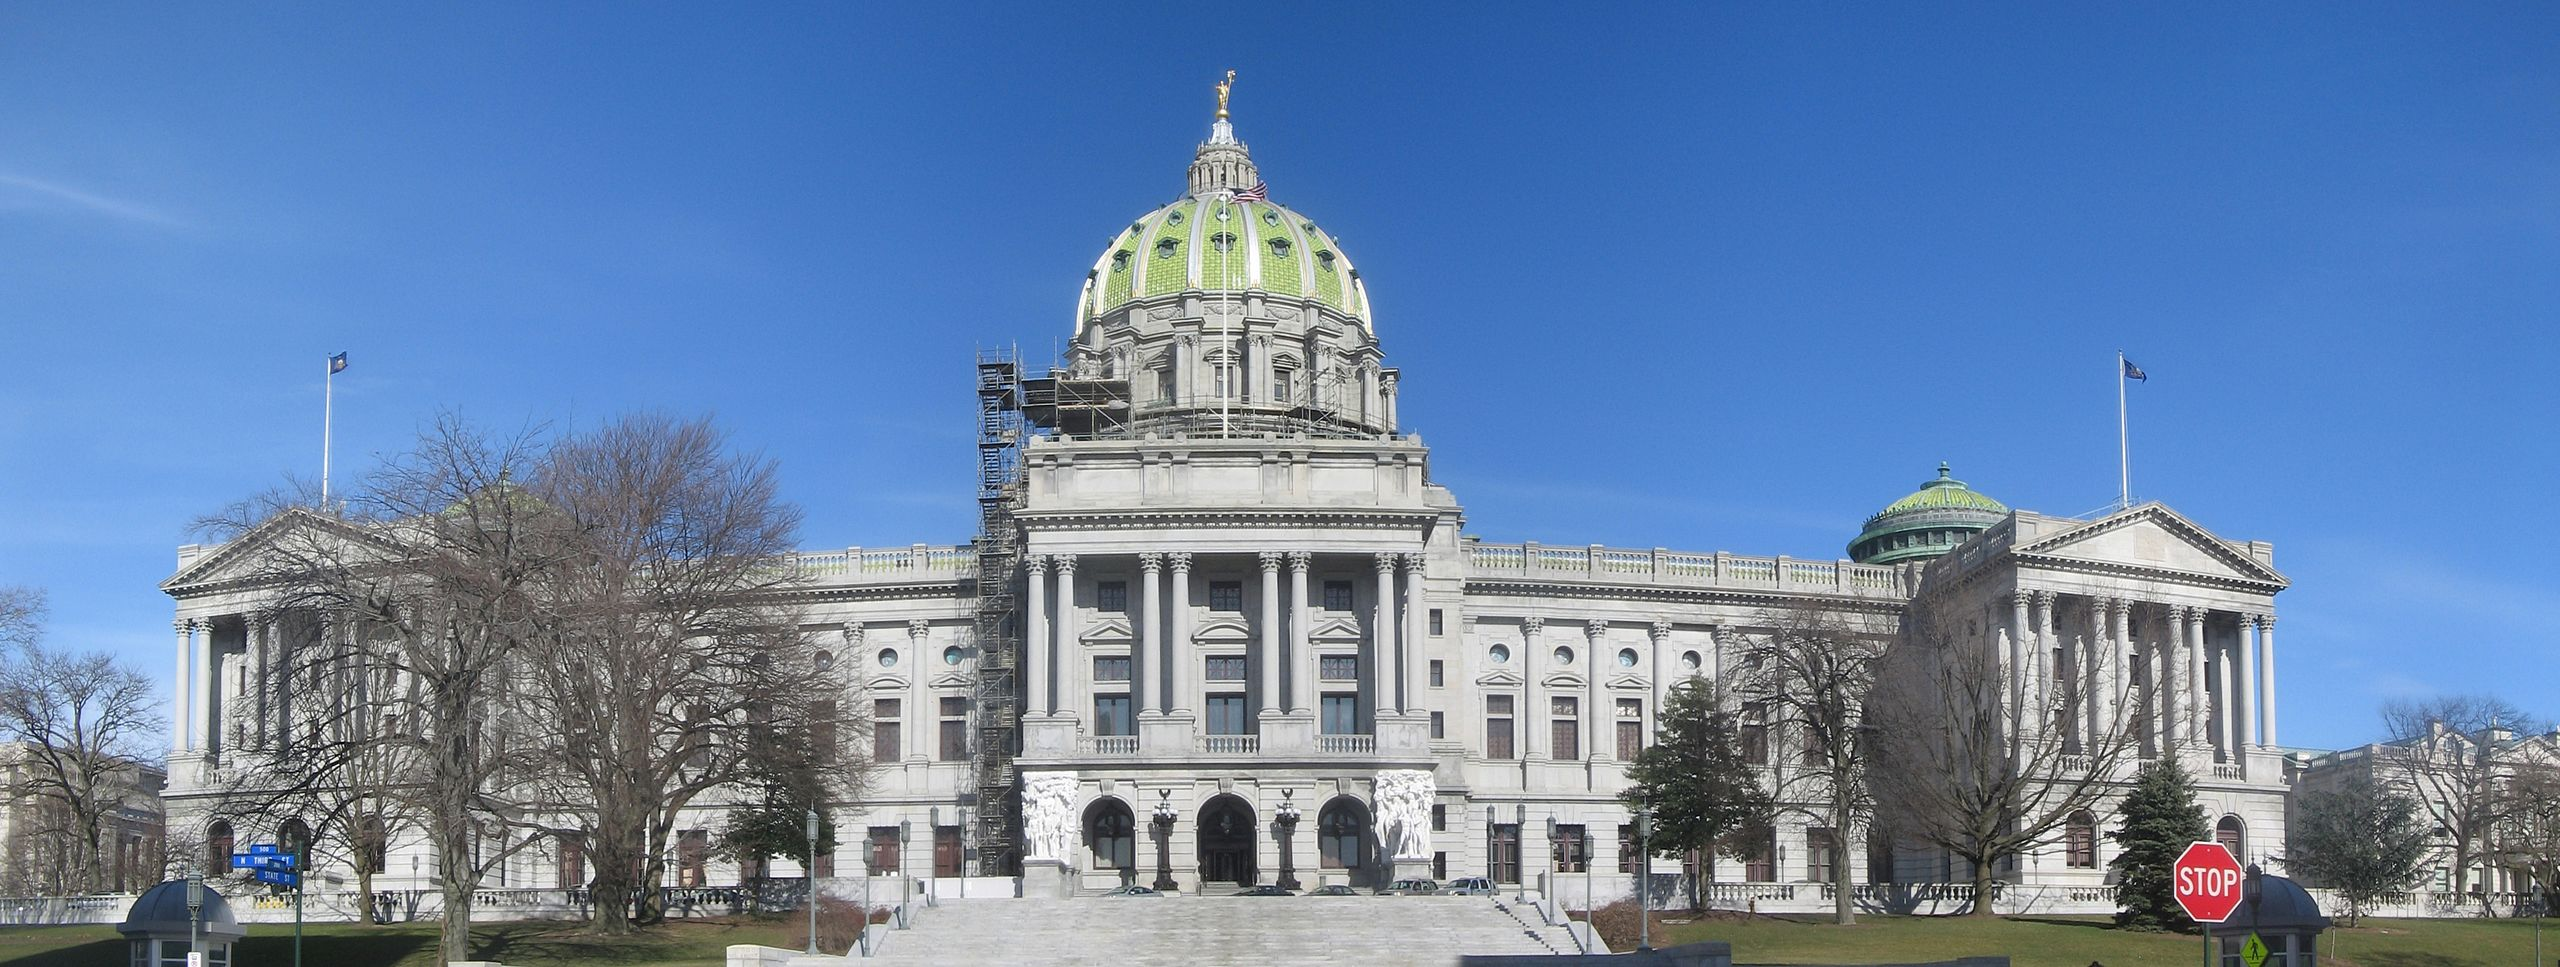 https://upload.wikimedia.org/wikipedia/commons/thumb/3/31/Pennsylvania_State_Capitol_Front_Panorama.jpg/2560px-Pennsylvania_State_Capitol_Front_Panorama.jpg